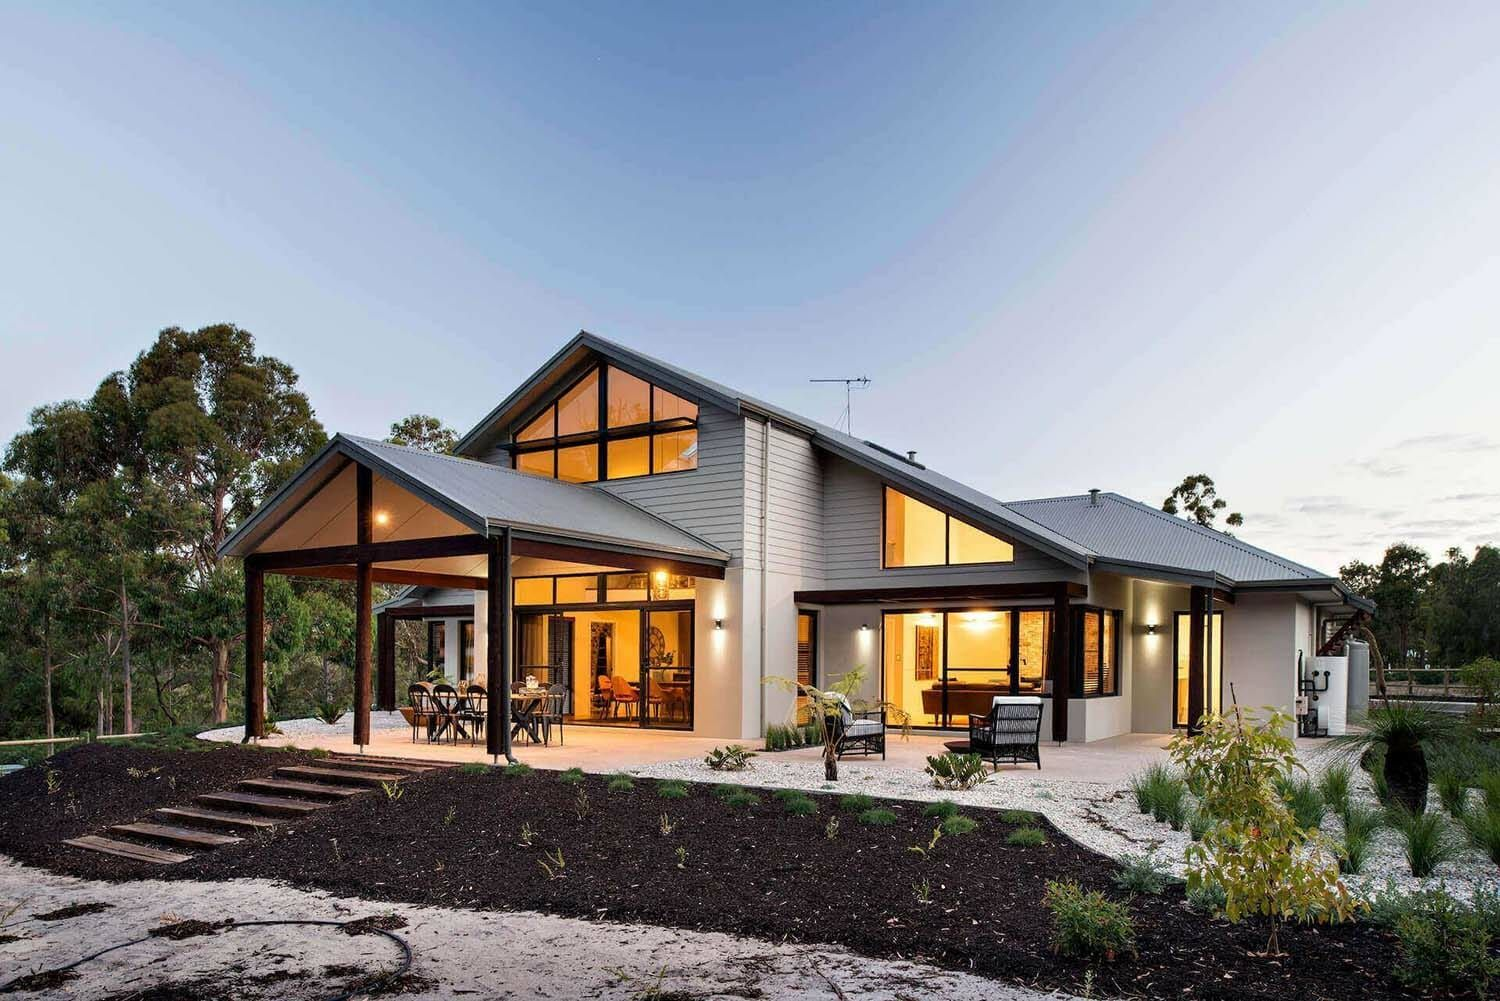 Bright And Spacious Dream Home Overlooking The Australian Bushland Country House Design Loft House Design Country Home Exteriors